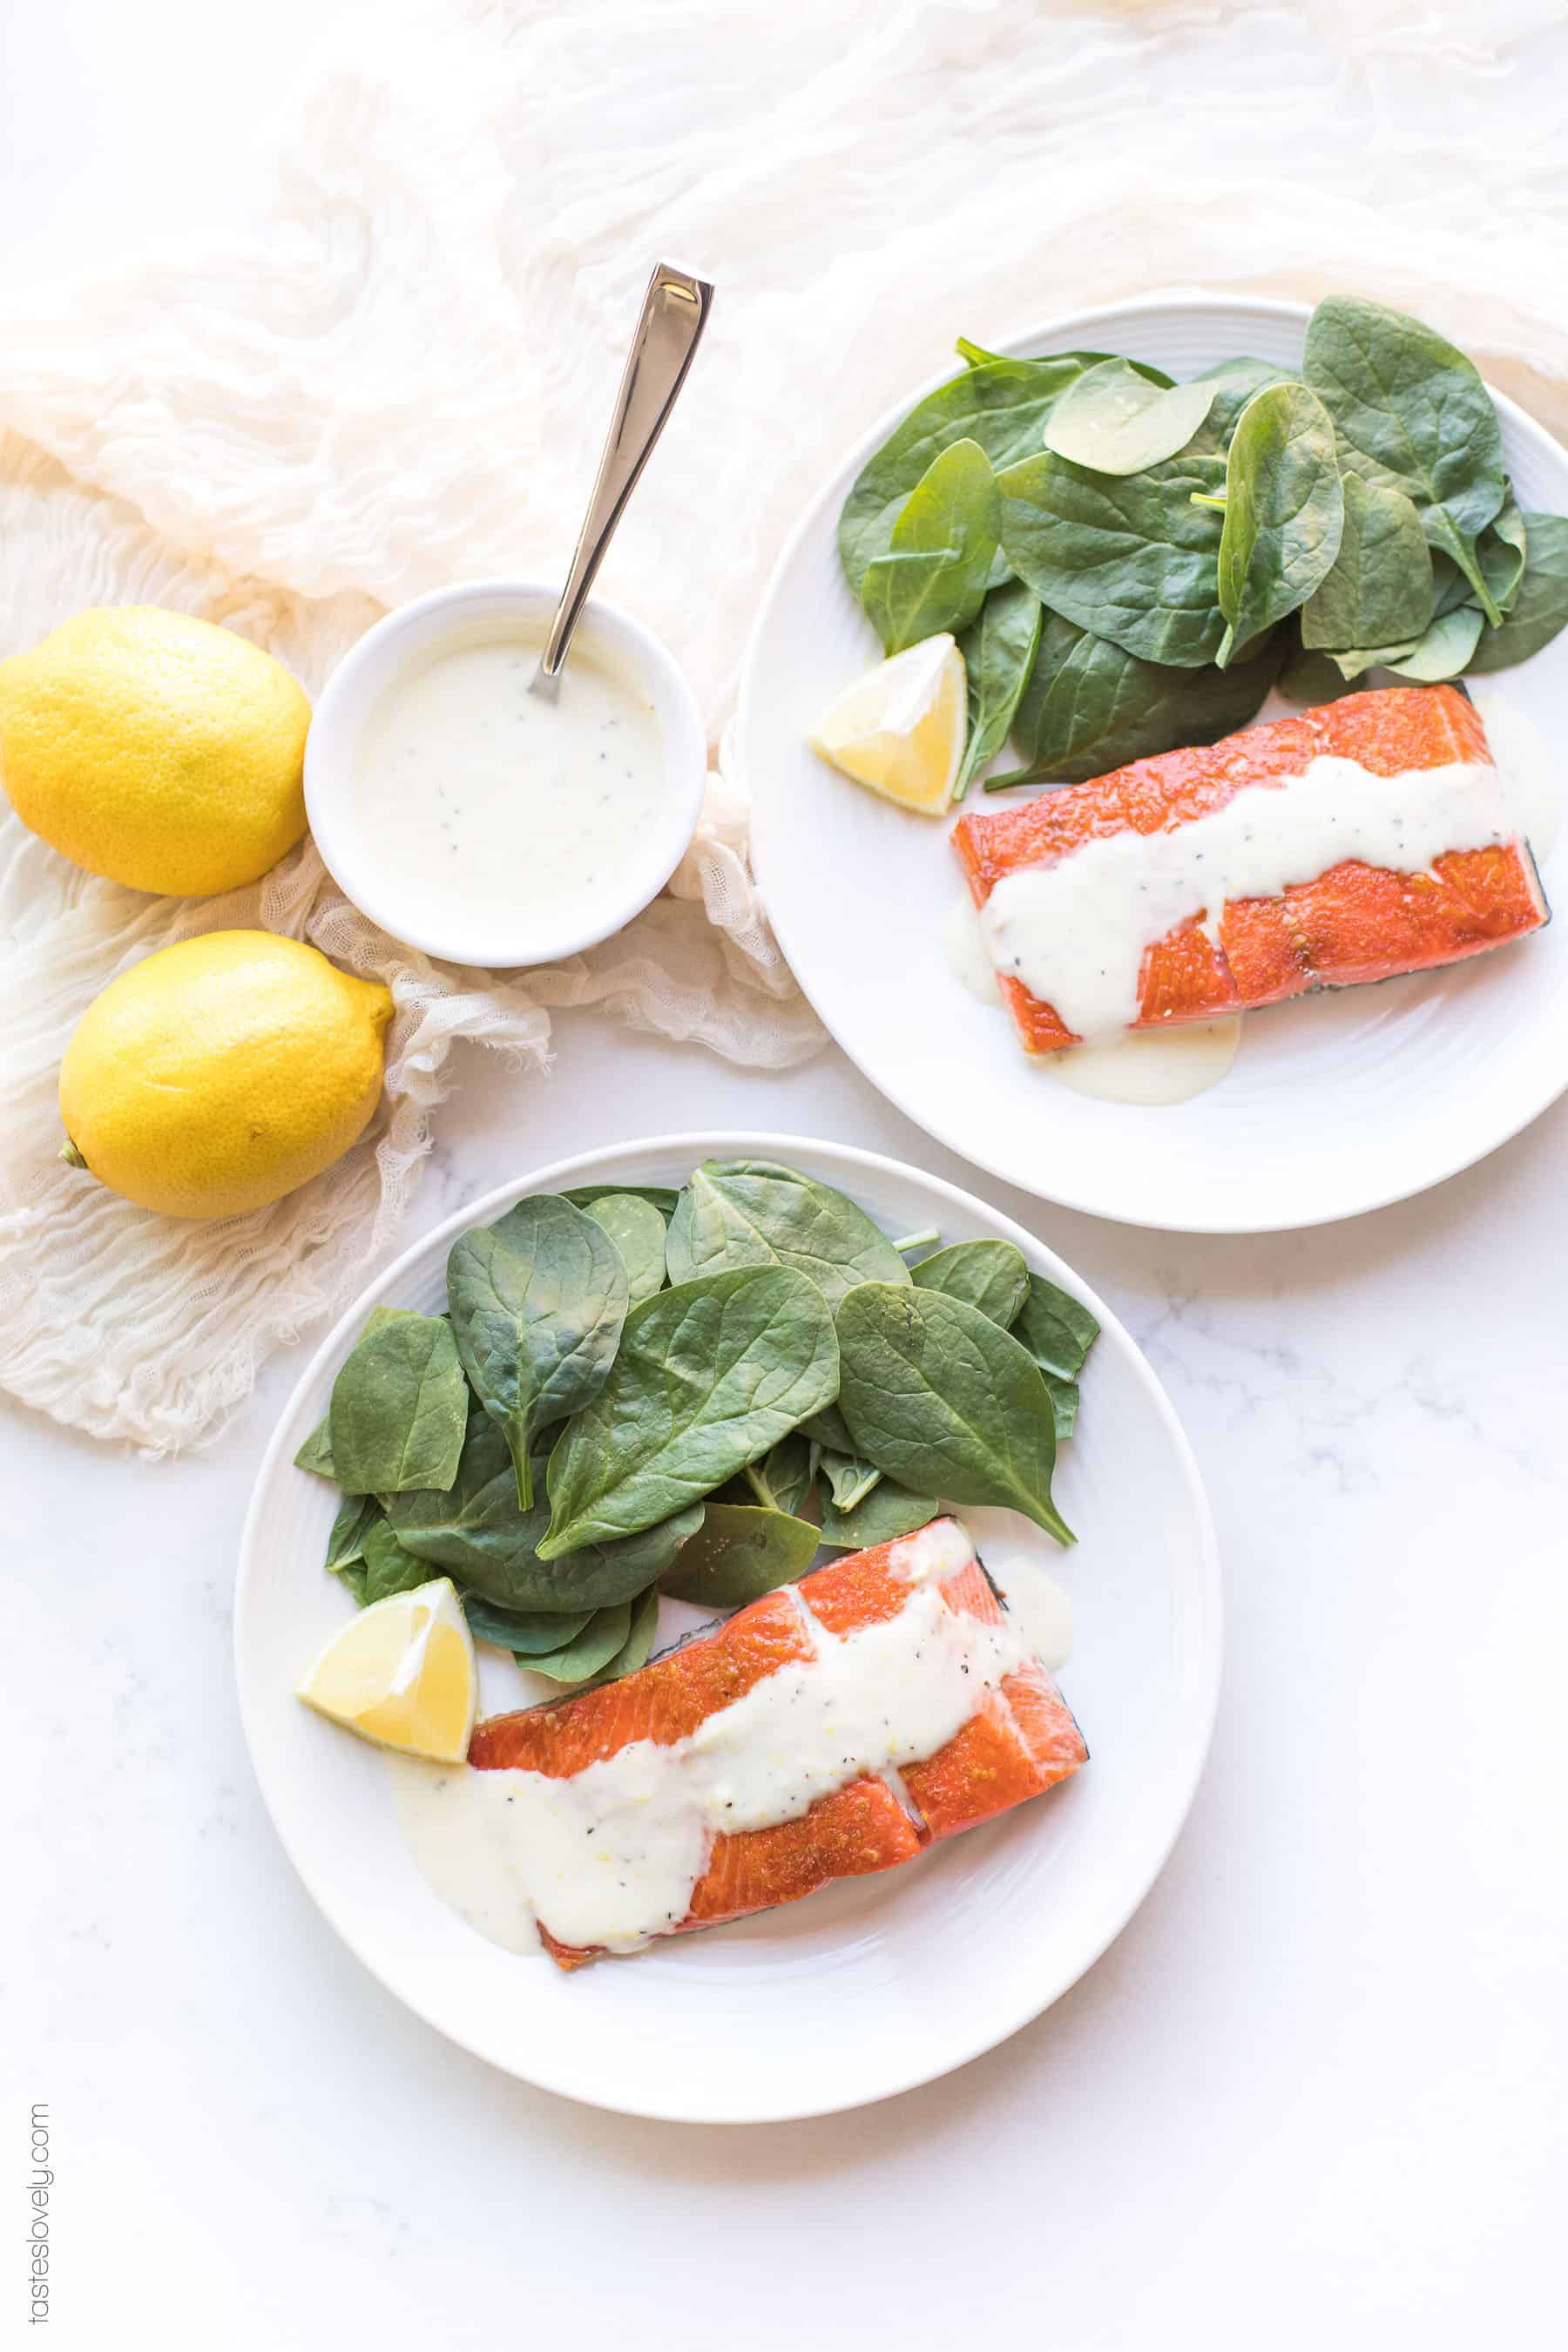 Salmon topped with a white sauce lemon garlic aioli on a plate with spinach